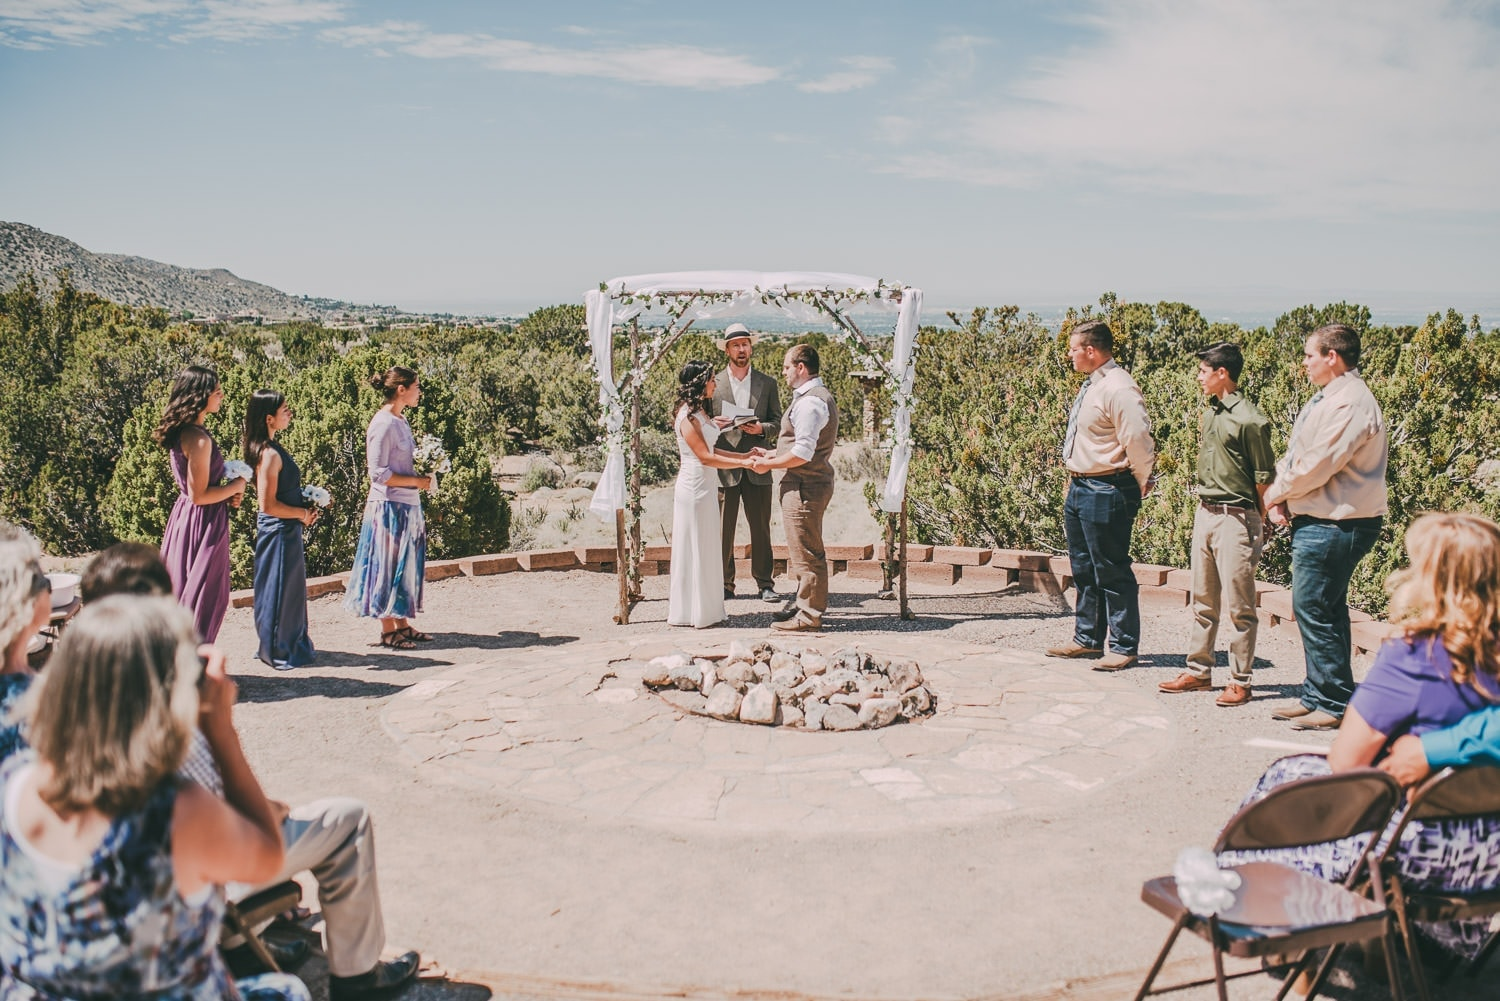 Wide view of the wedding party during the ceremony. Albuquerque can be seen in the background.